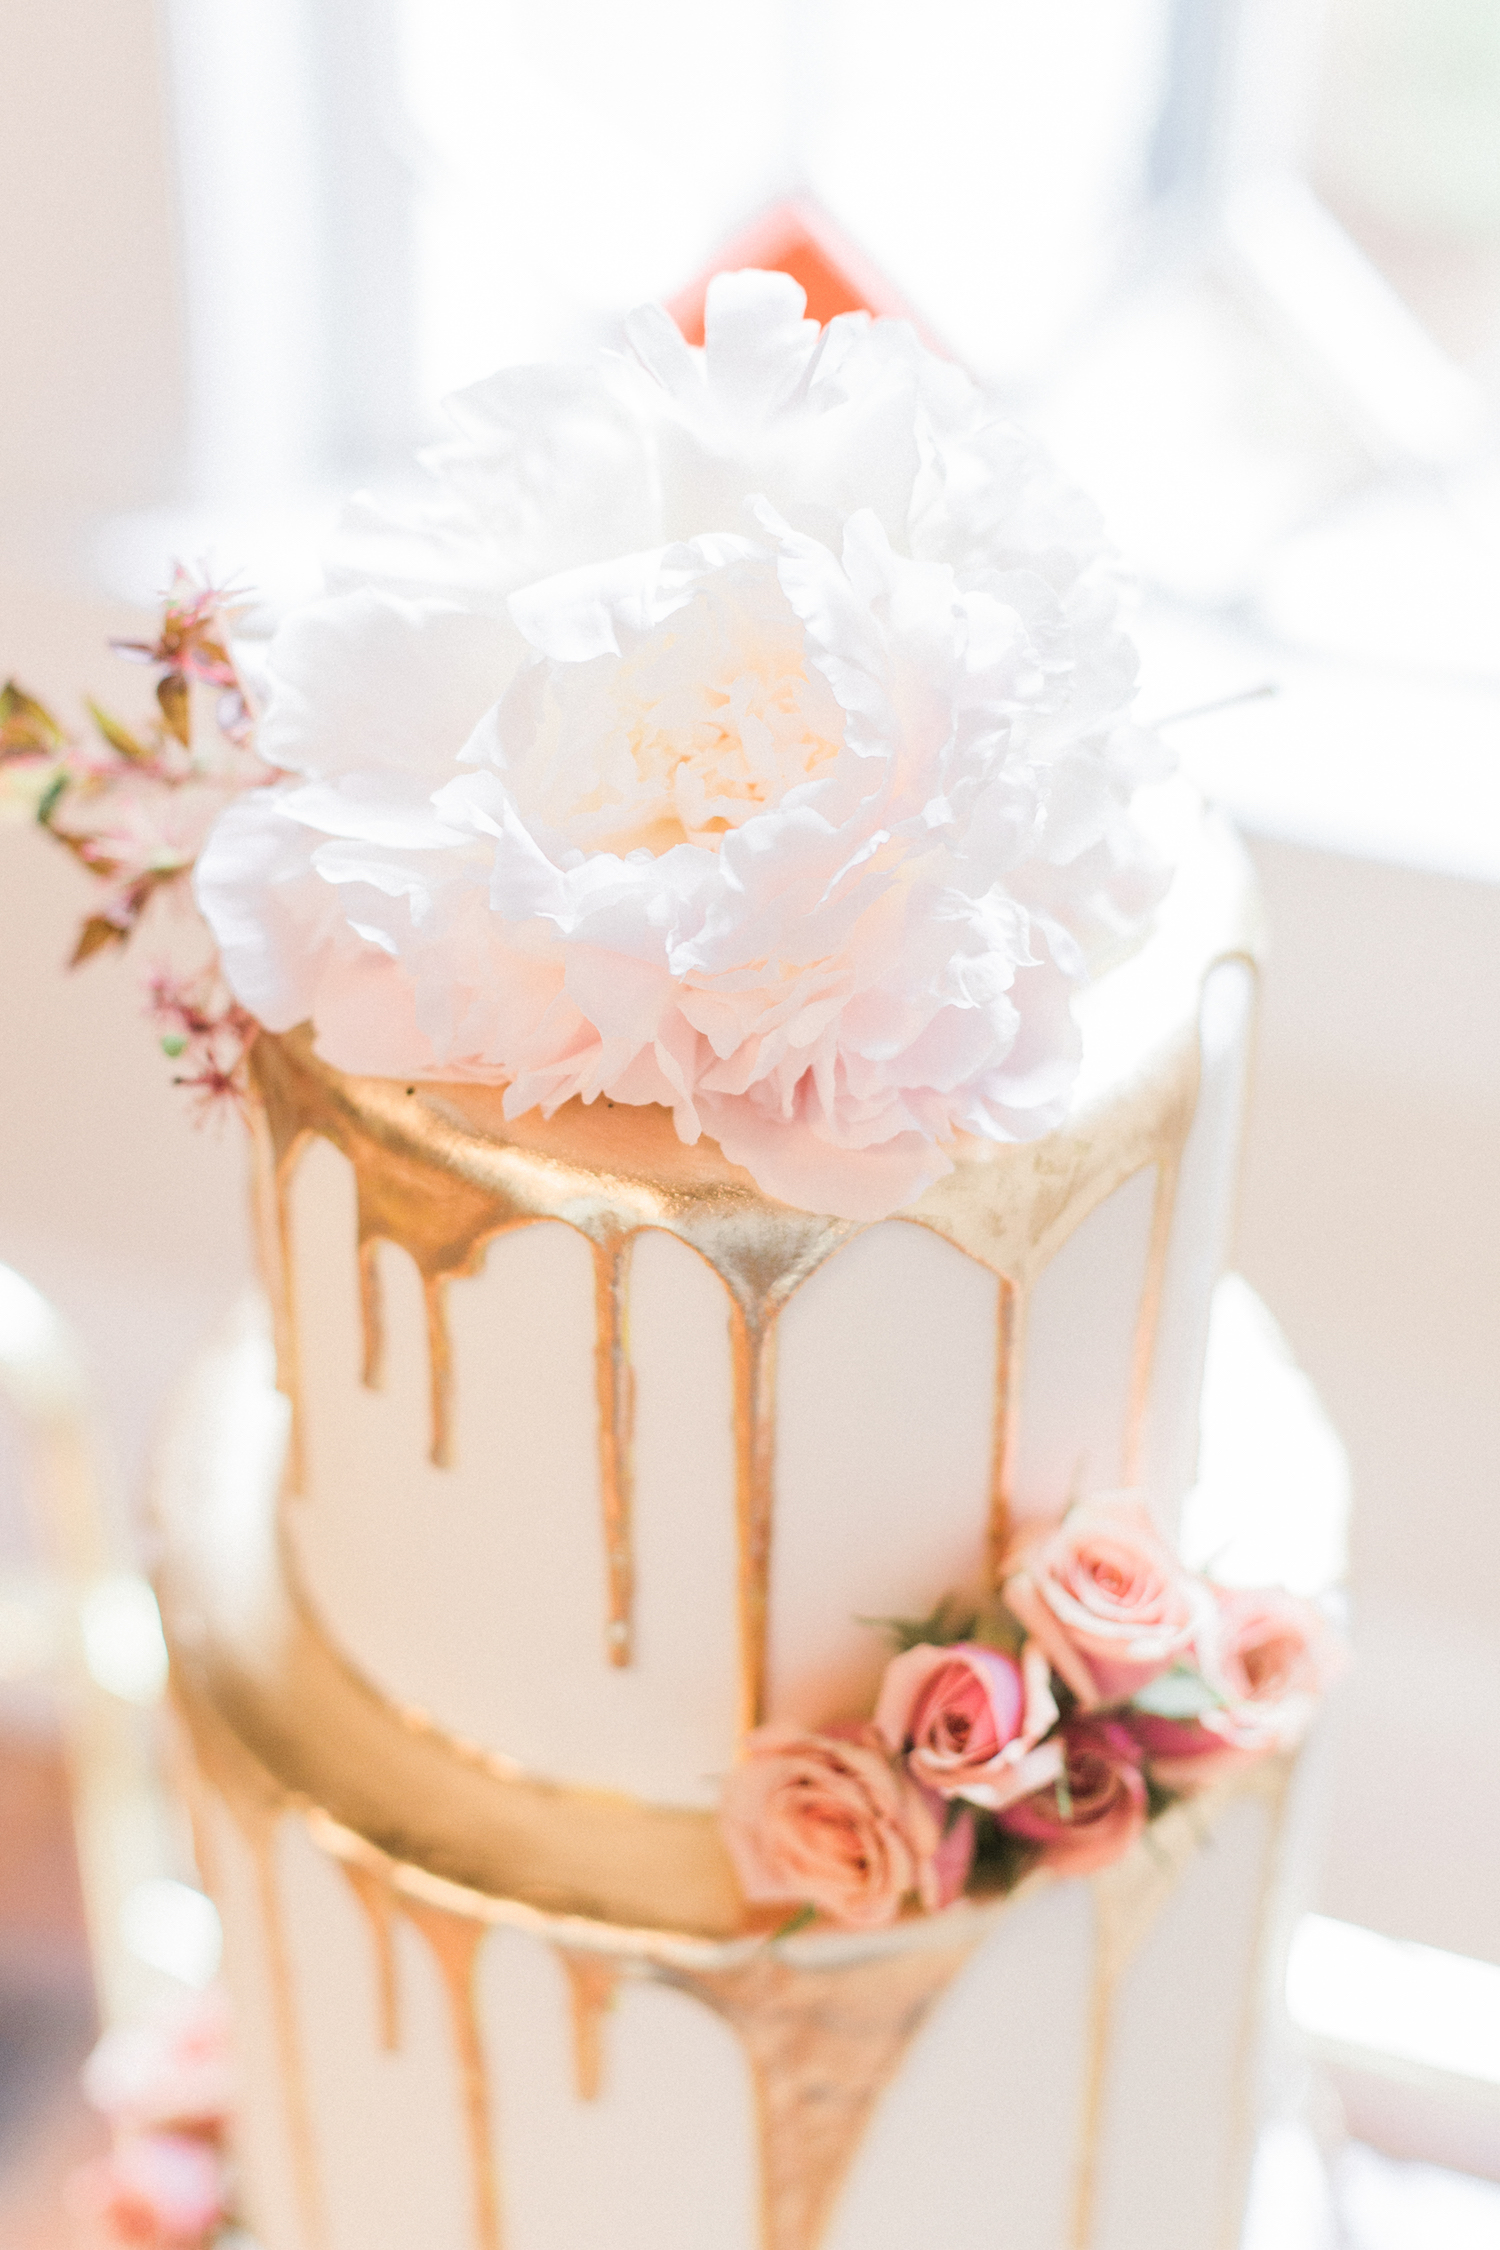 Peony cake topped on a gold dripped two tier wedding cake with roses.